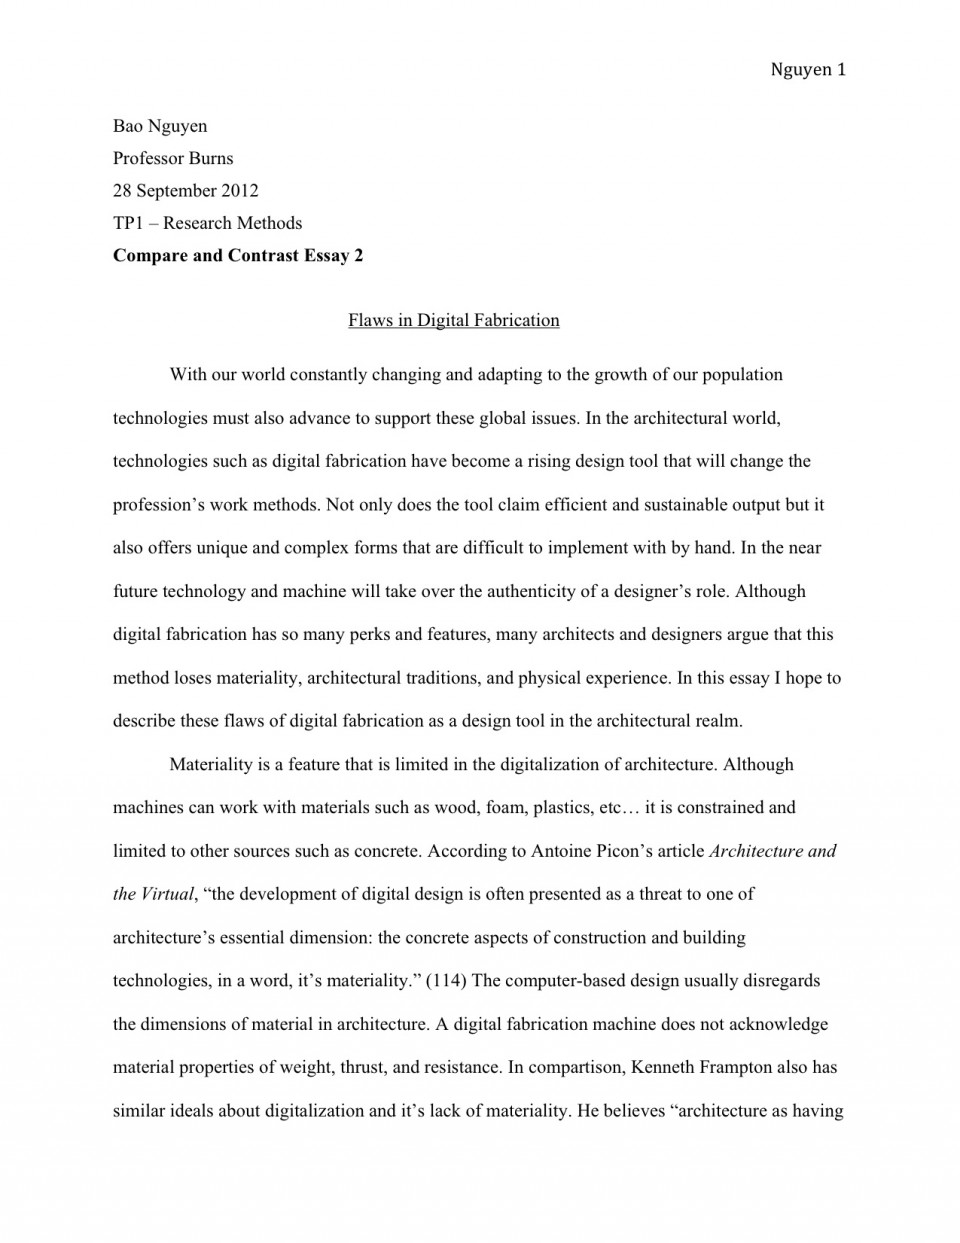 005 How To Write An Essay Example Tp1 3 Shocking English Fast Title In Mla Format Conclusion 960